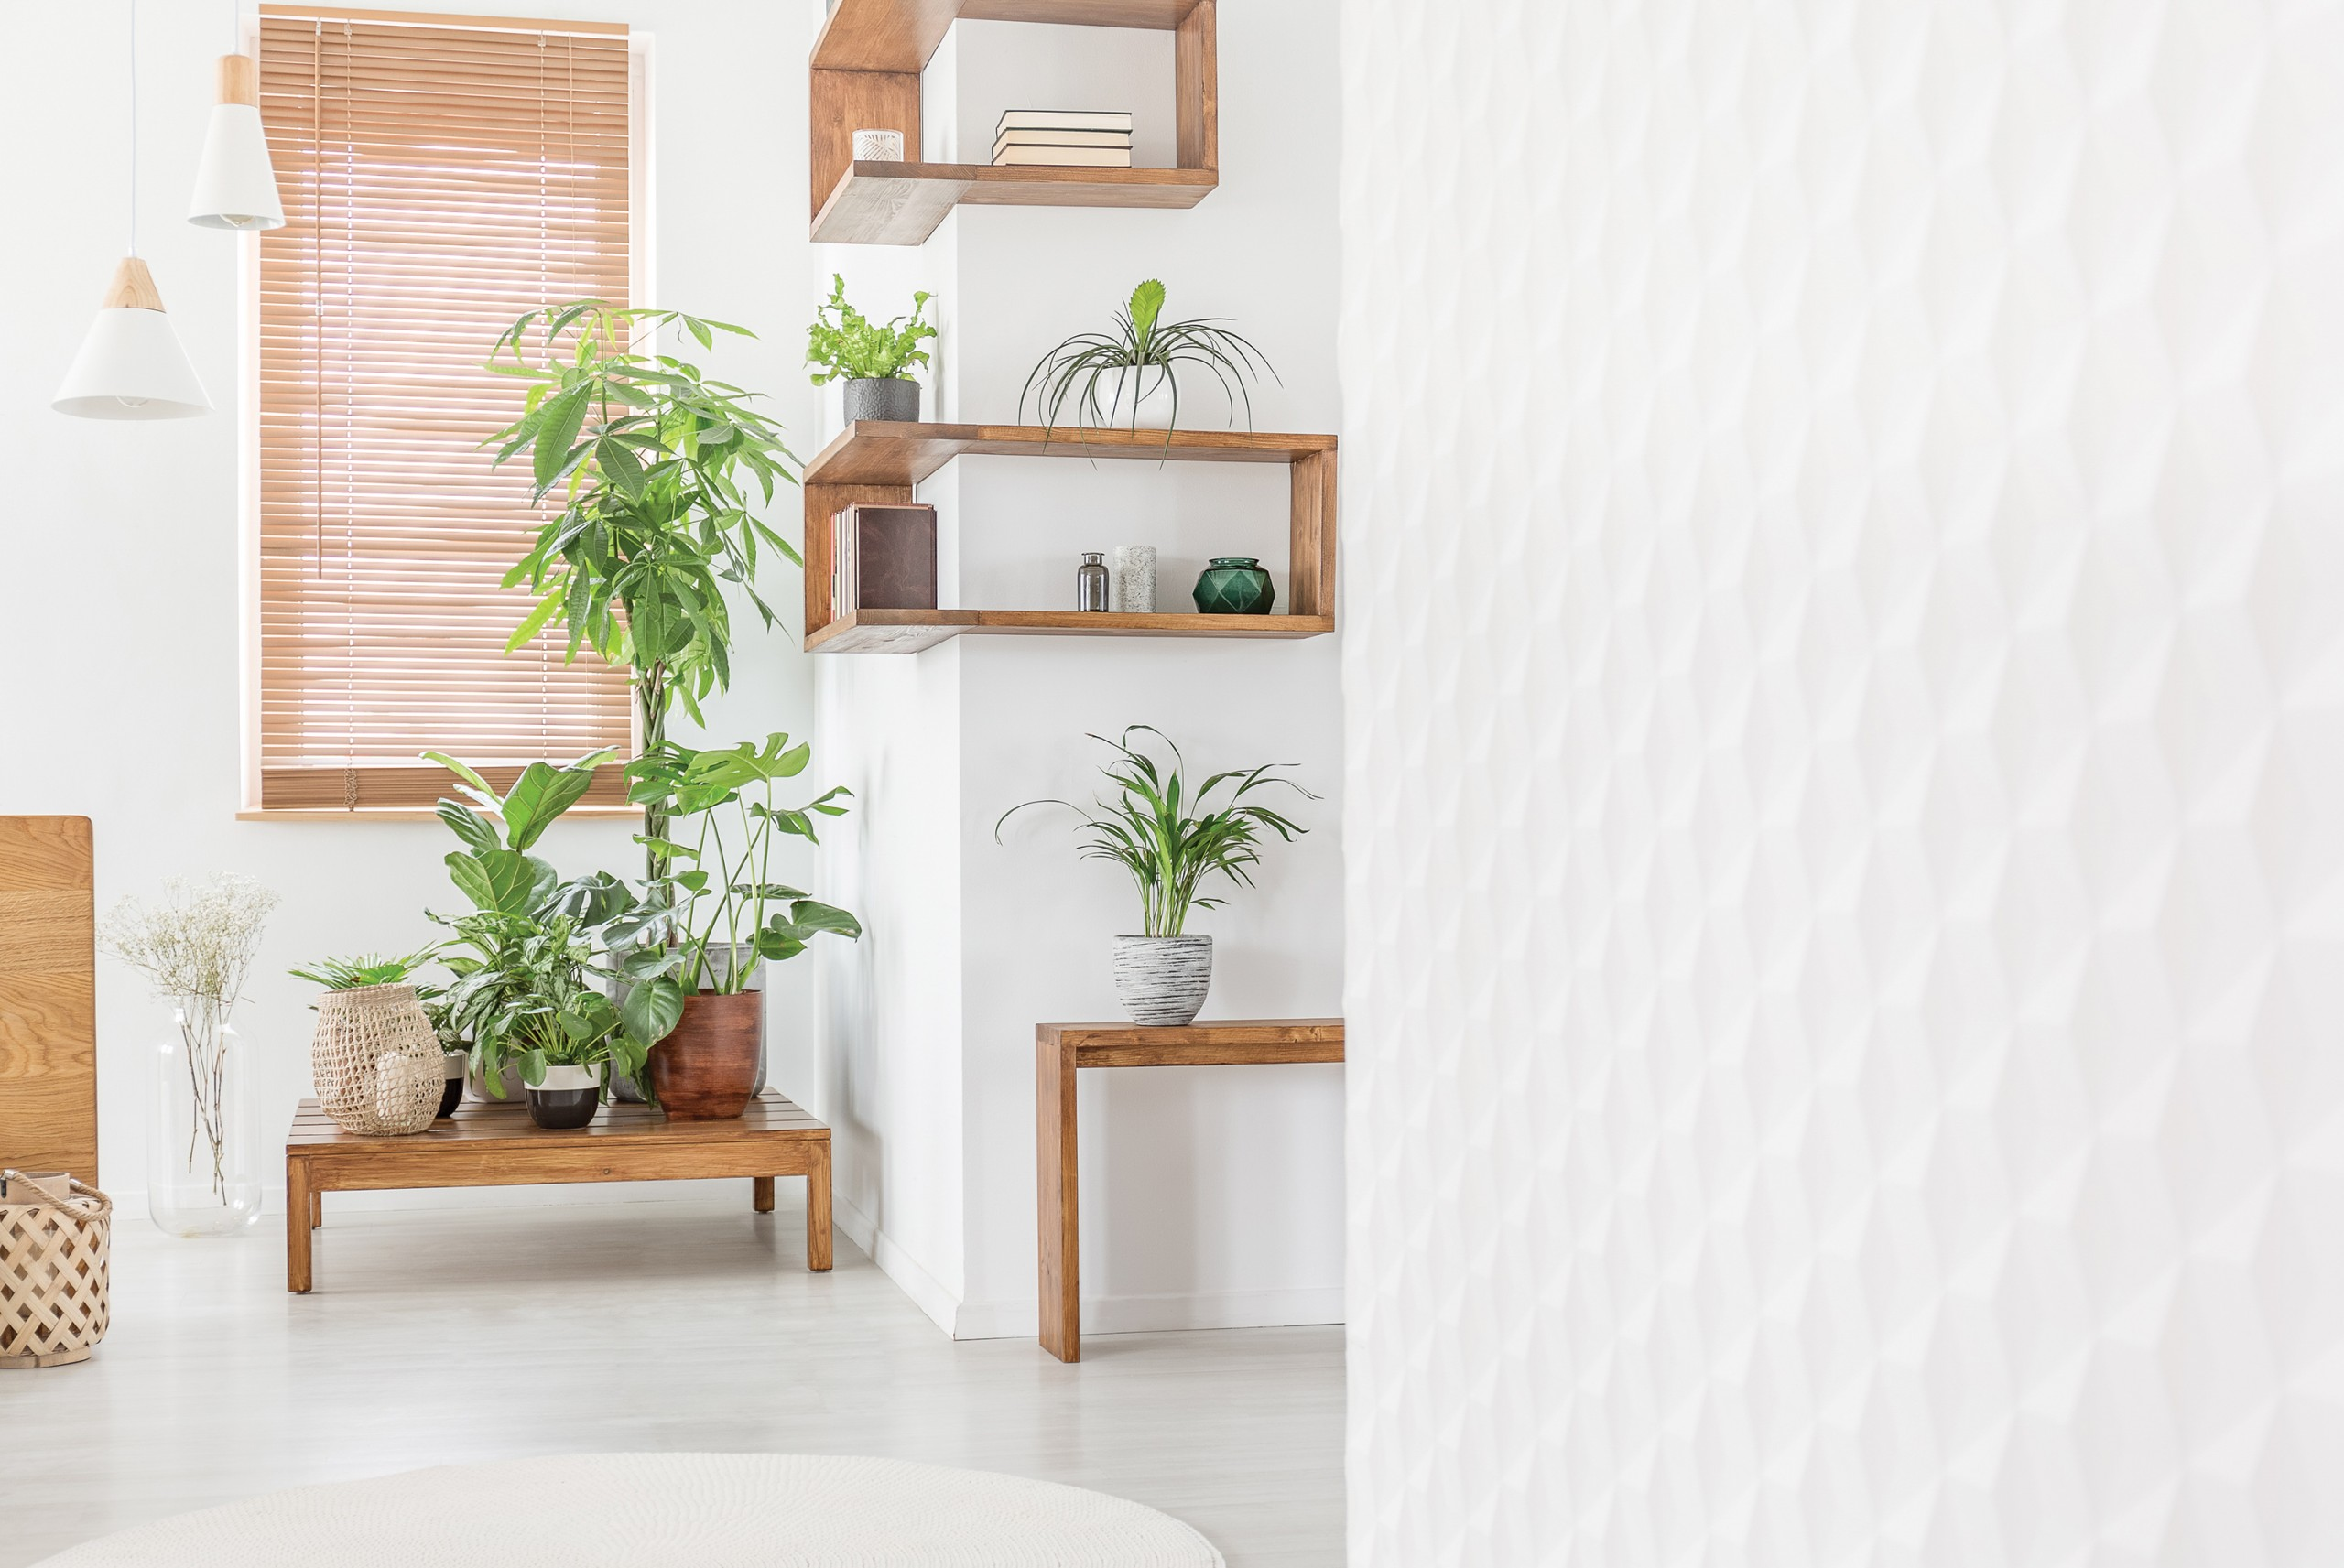 08 21 Hhr Welcome Small Spaces 2